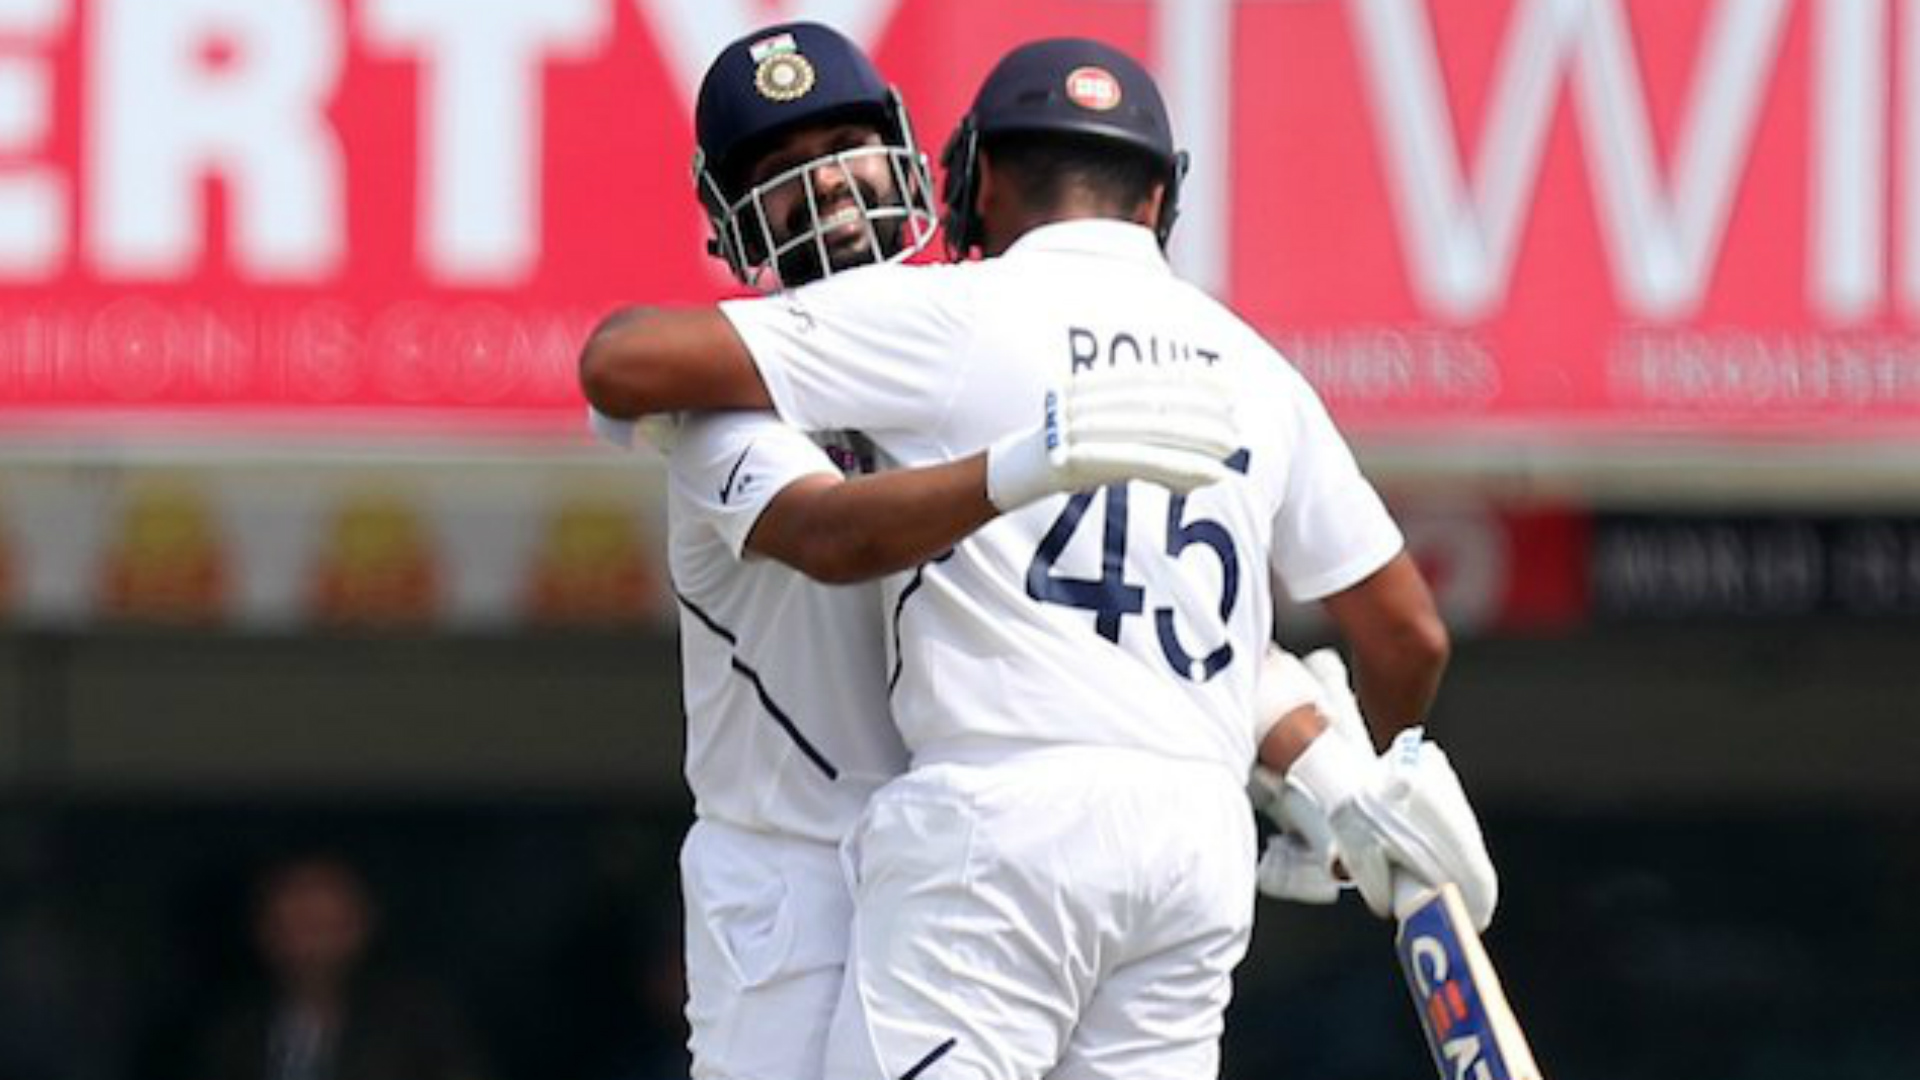 Rohit completes first Test double hundred as India take complete control